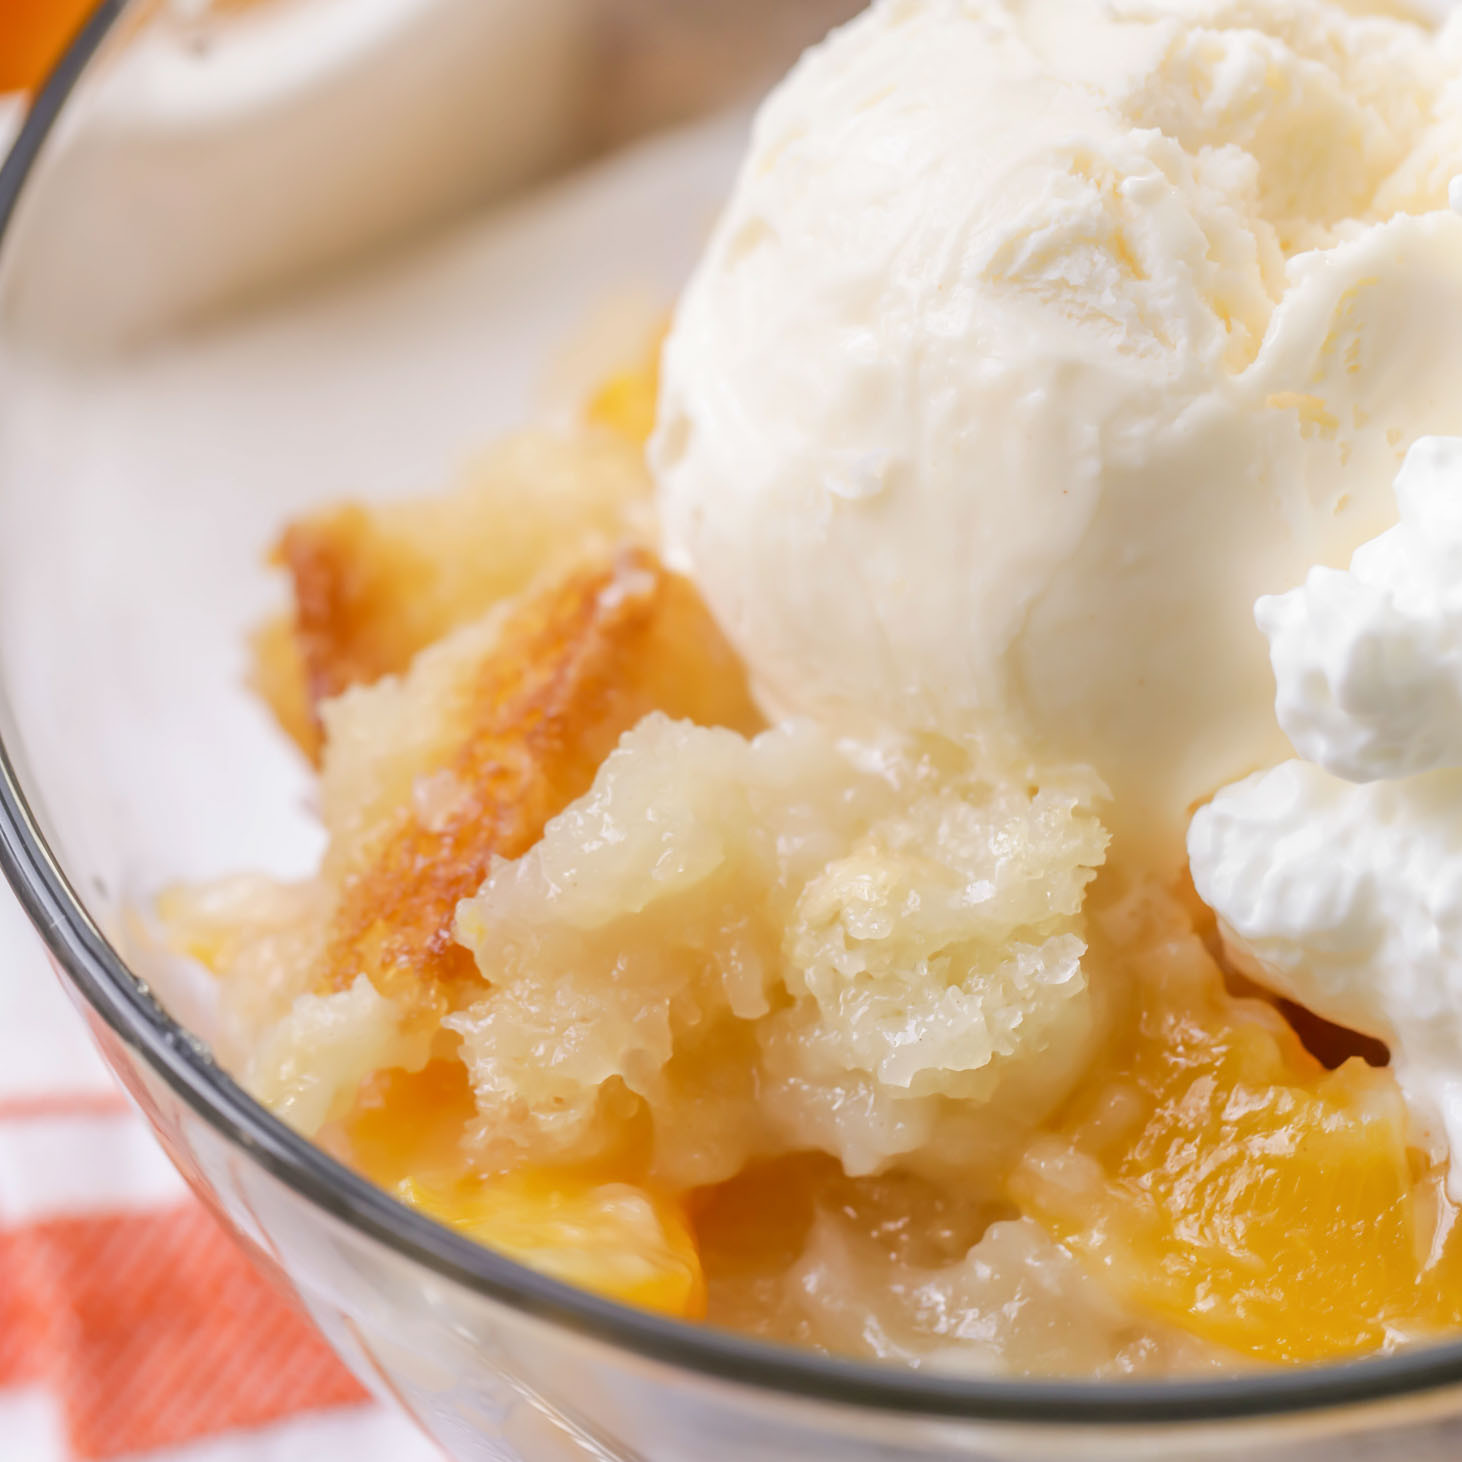 Peach Desserts Easy  EASY Peach Cobbler Recipe Just 5 Minutes of Prep Time